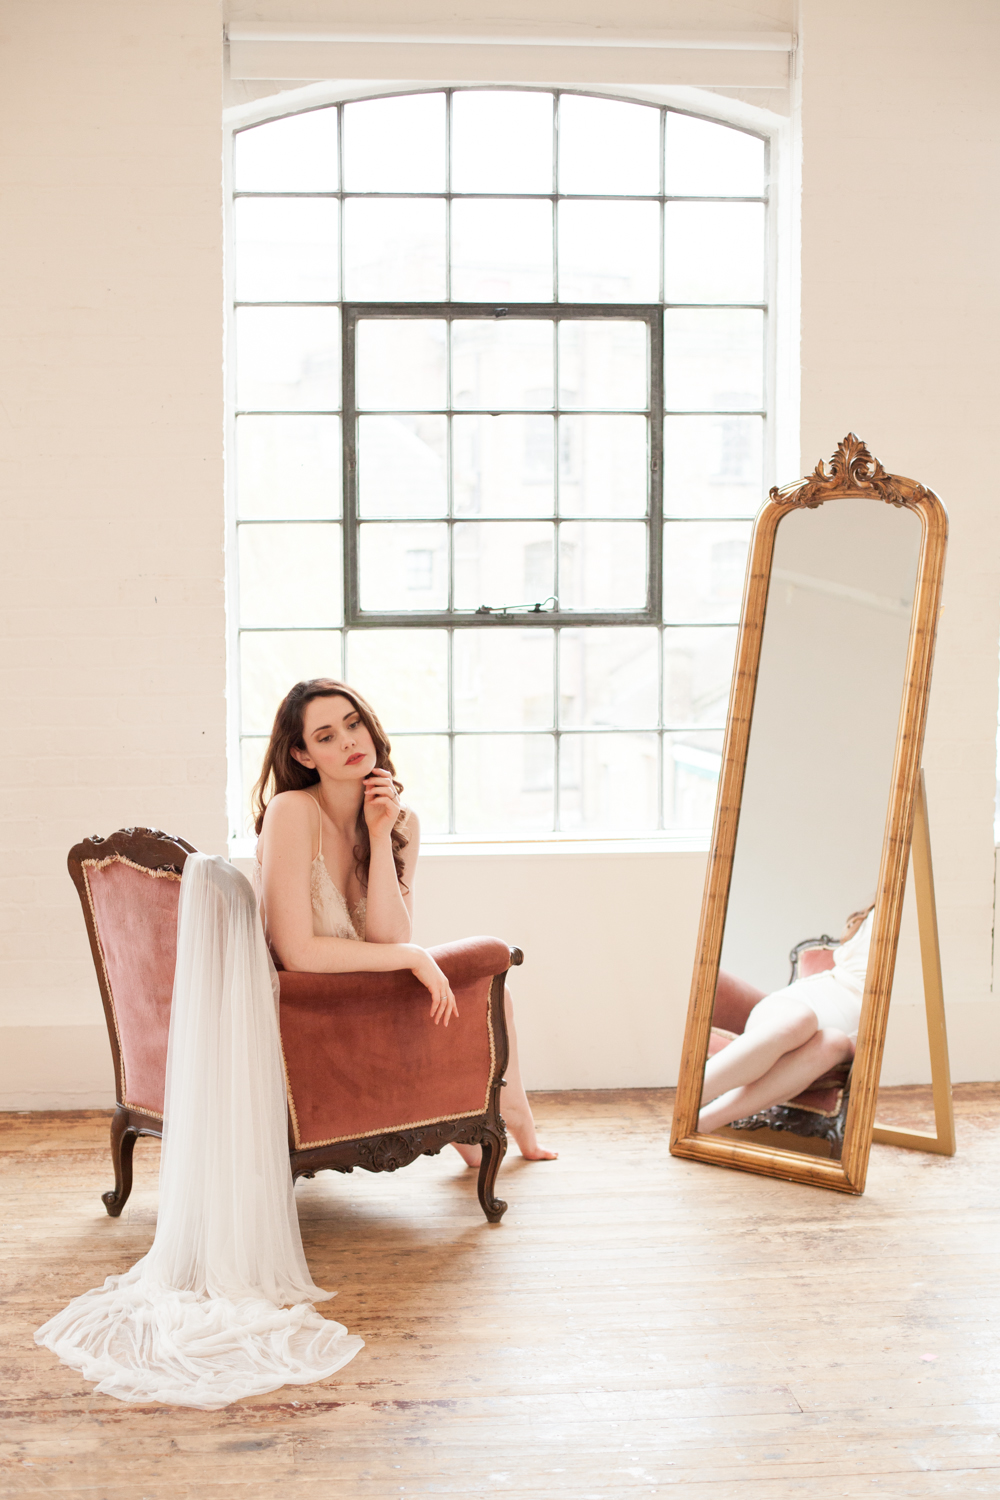 The Timeless Stylist-UK Wedding Styling-Elegant and Romantic Style Boudoir Shoot-Wedding Day Morning Bridal Styling